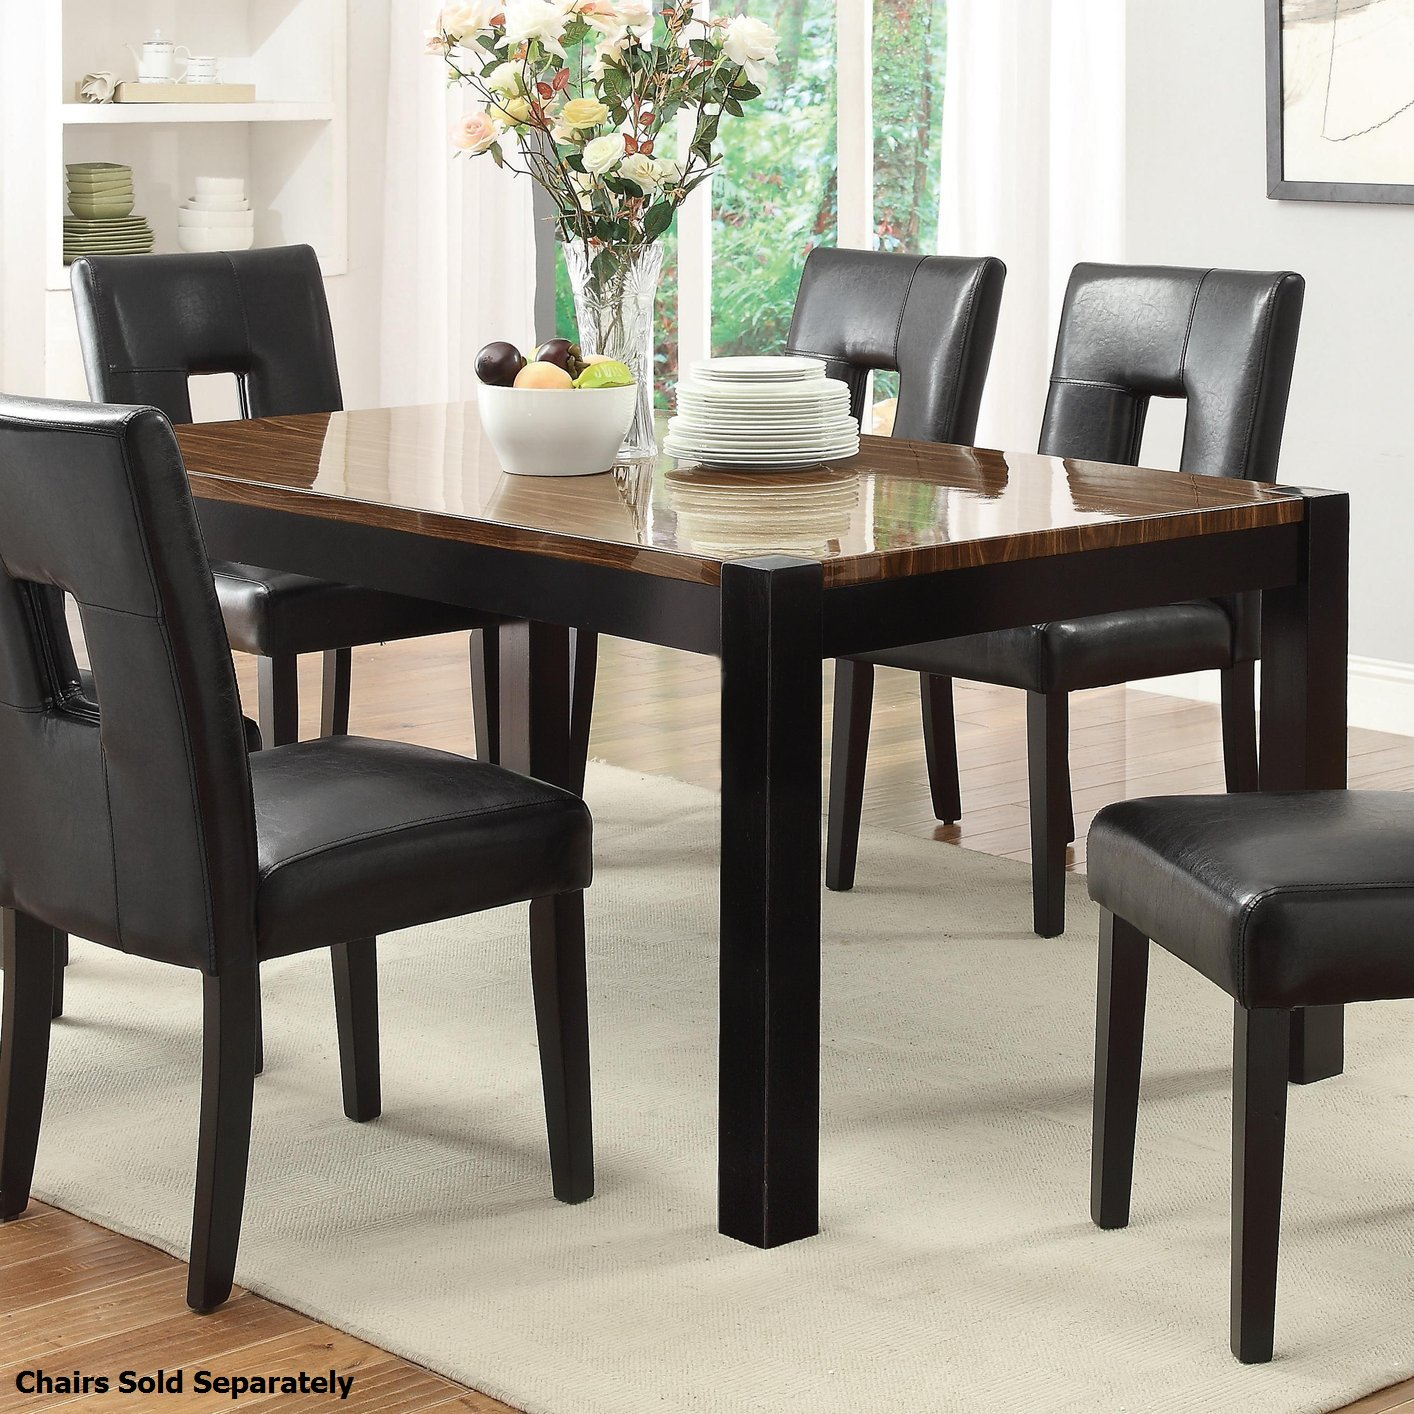 Coaster 103611 Black Wood Dining Table Steal A Sofa  : black wood dining table 447 from www.stealasofa.com size 1414 x 1414 jpeg 375kB